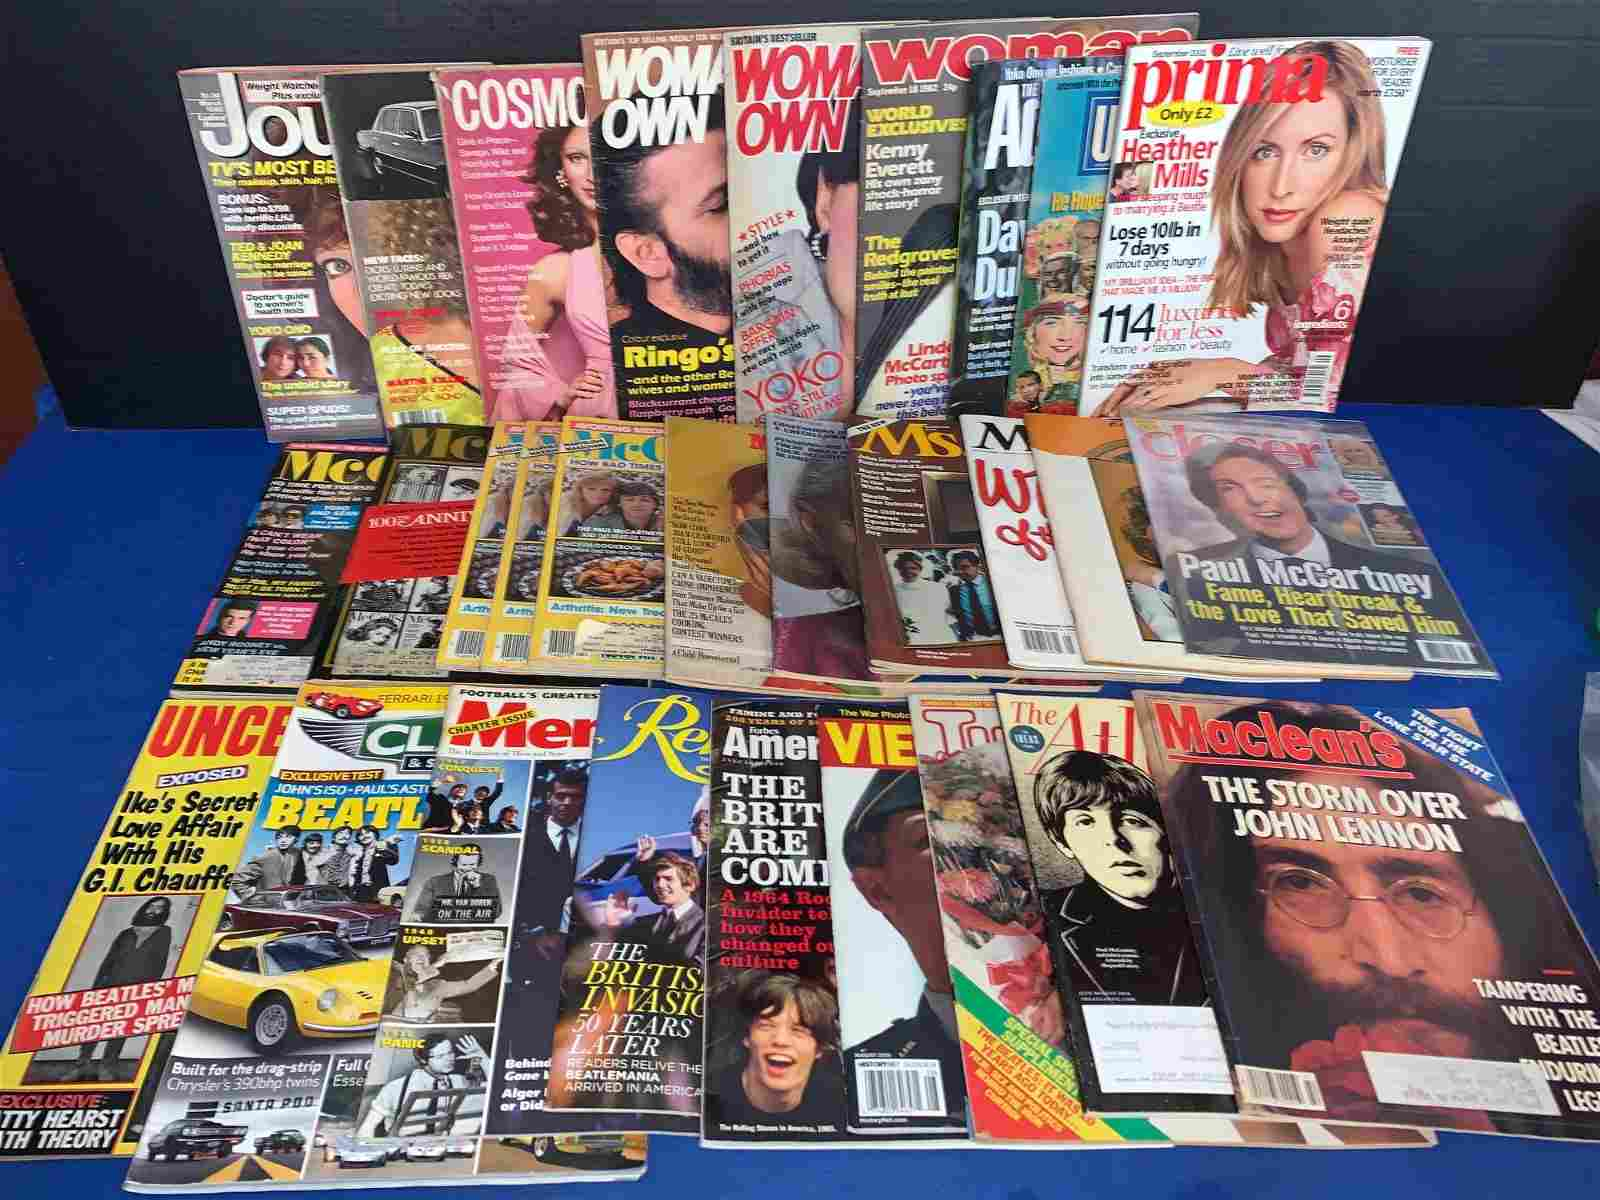 30 Non-Music Magazines Featuring The Beatles